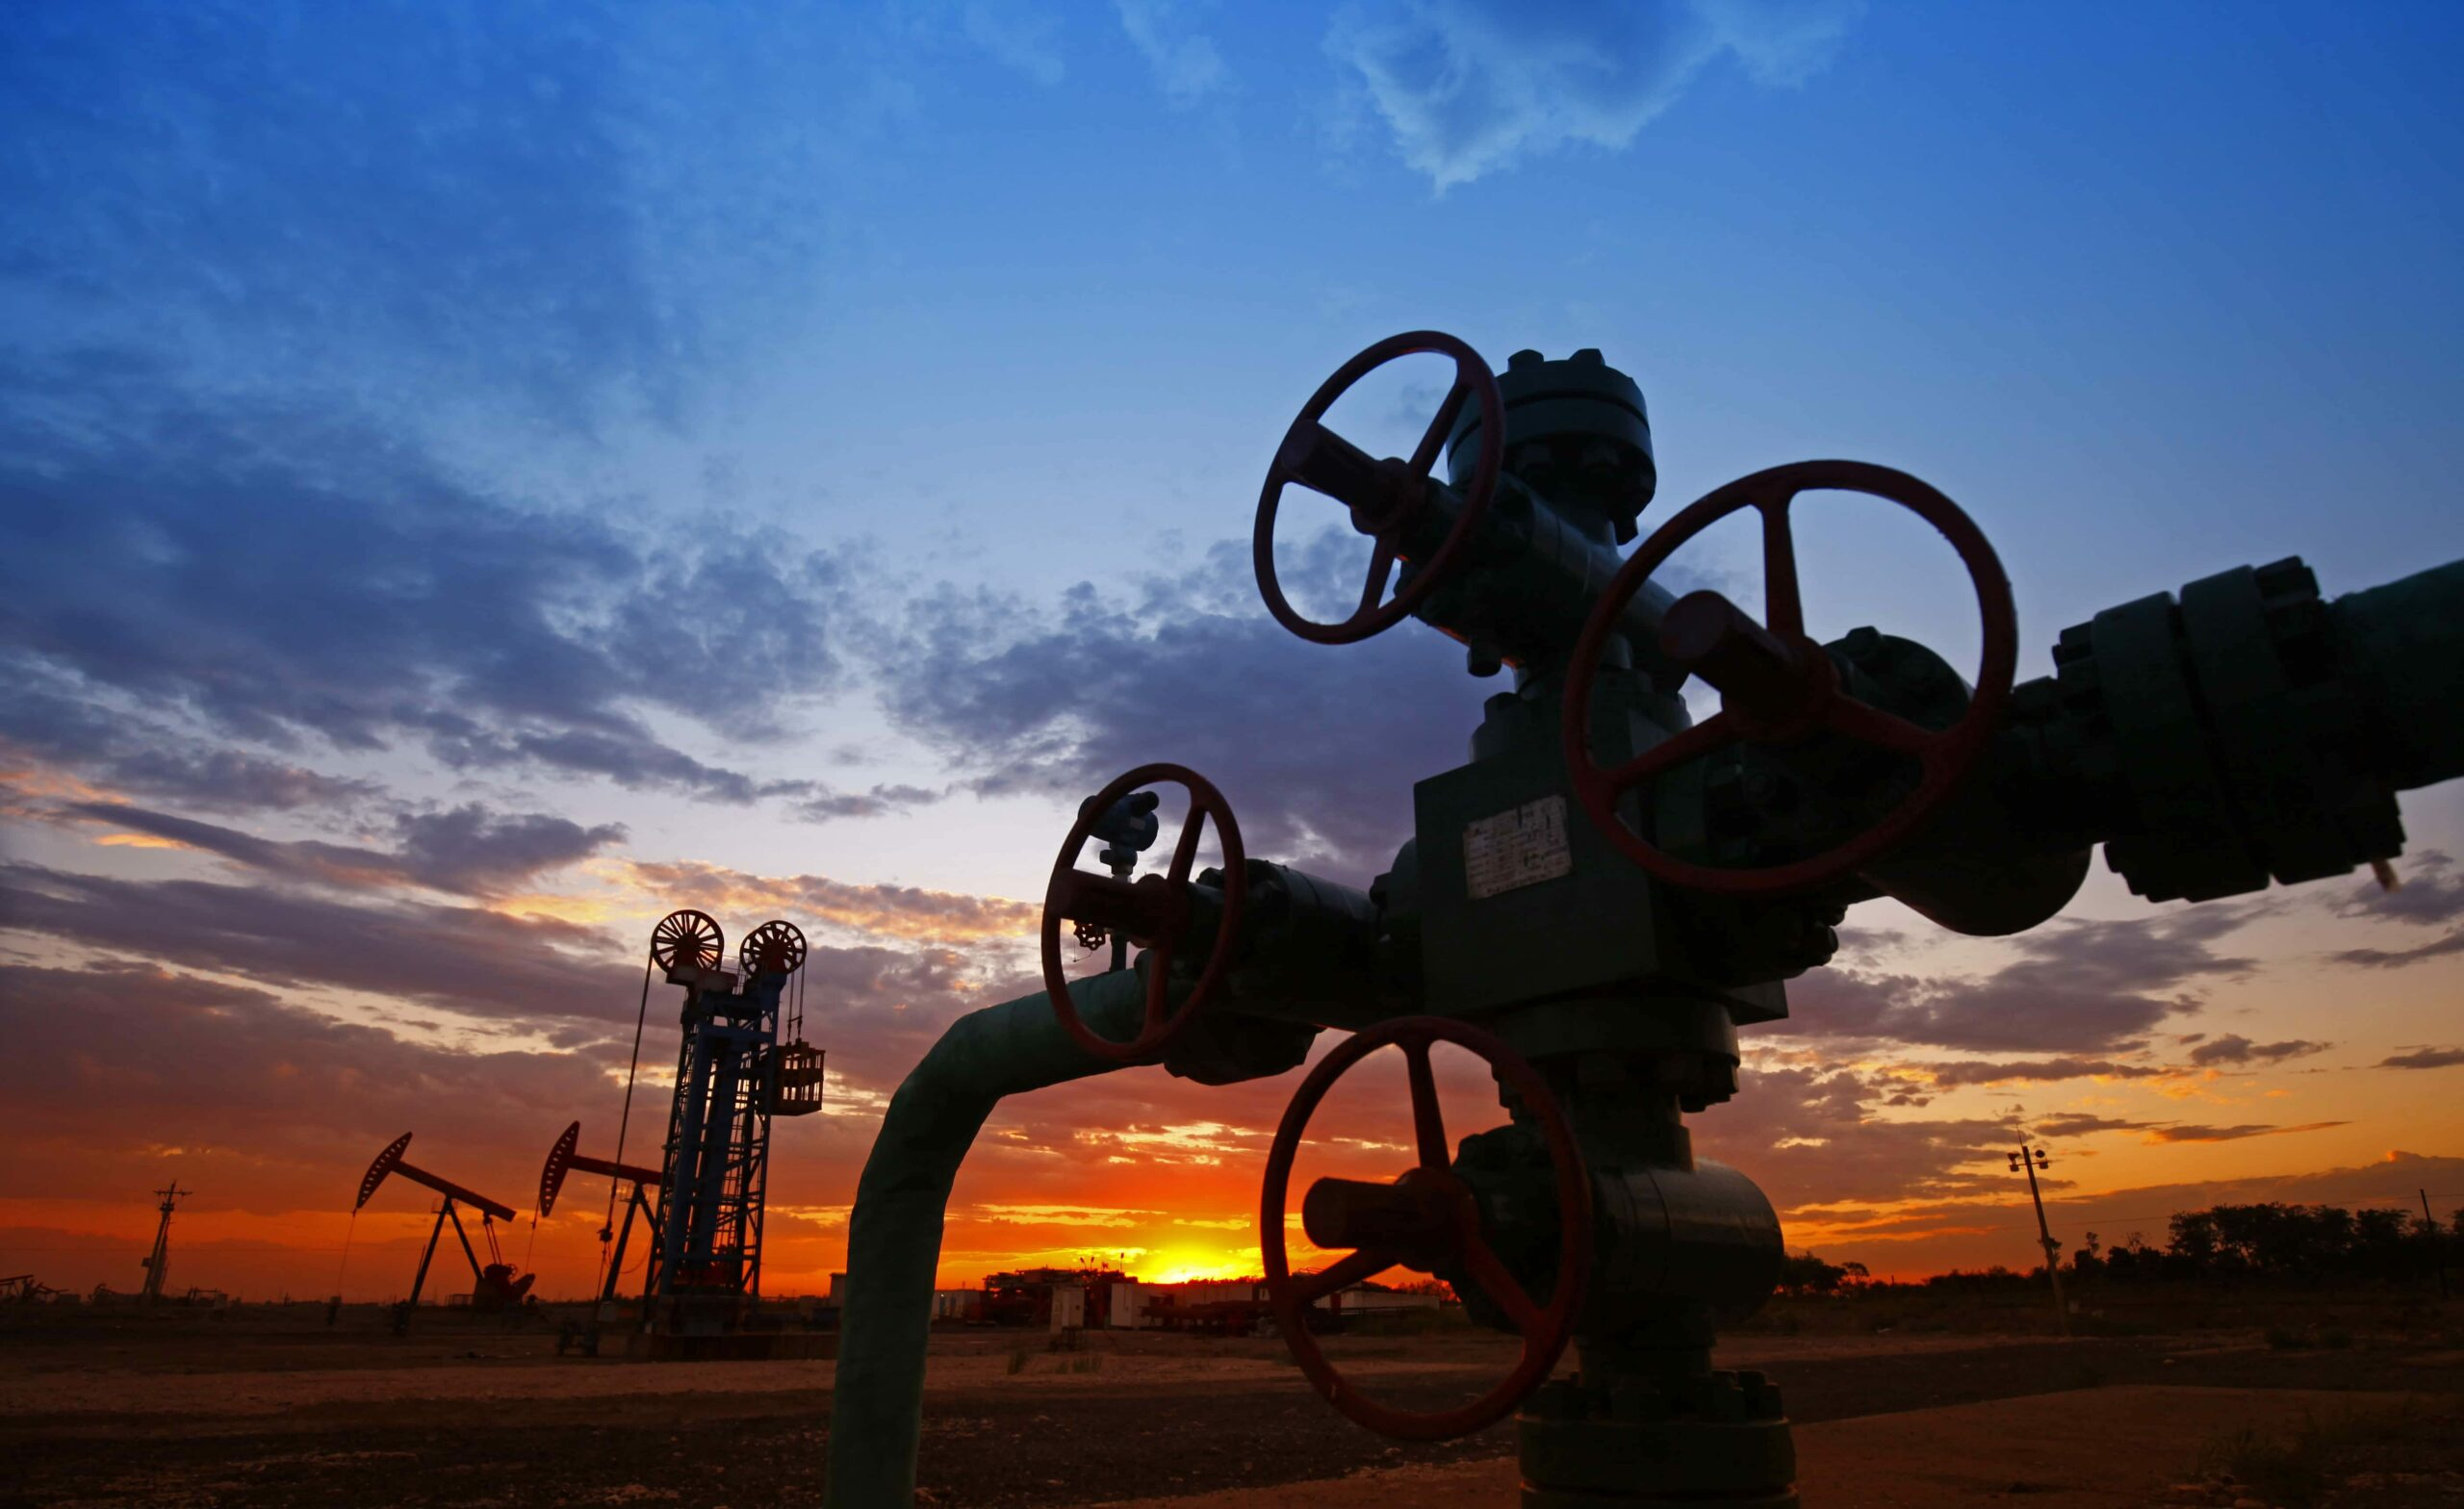 Oil pipes and valves